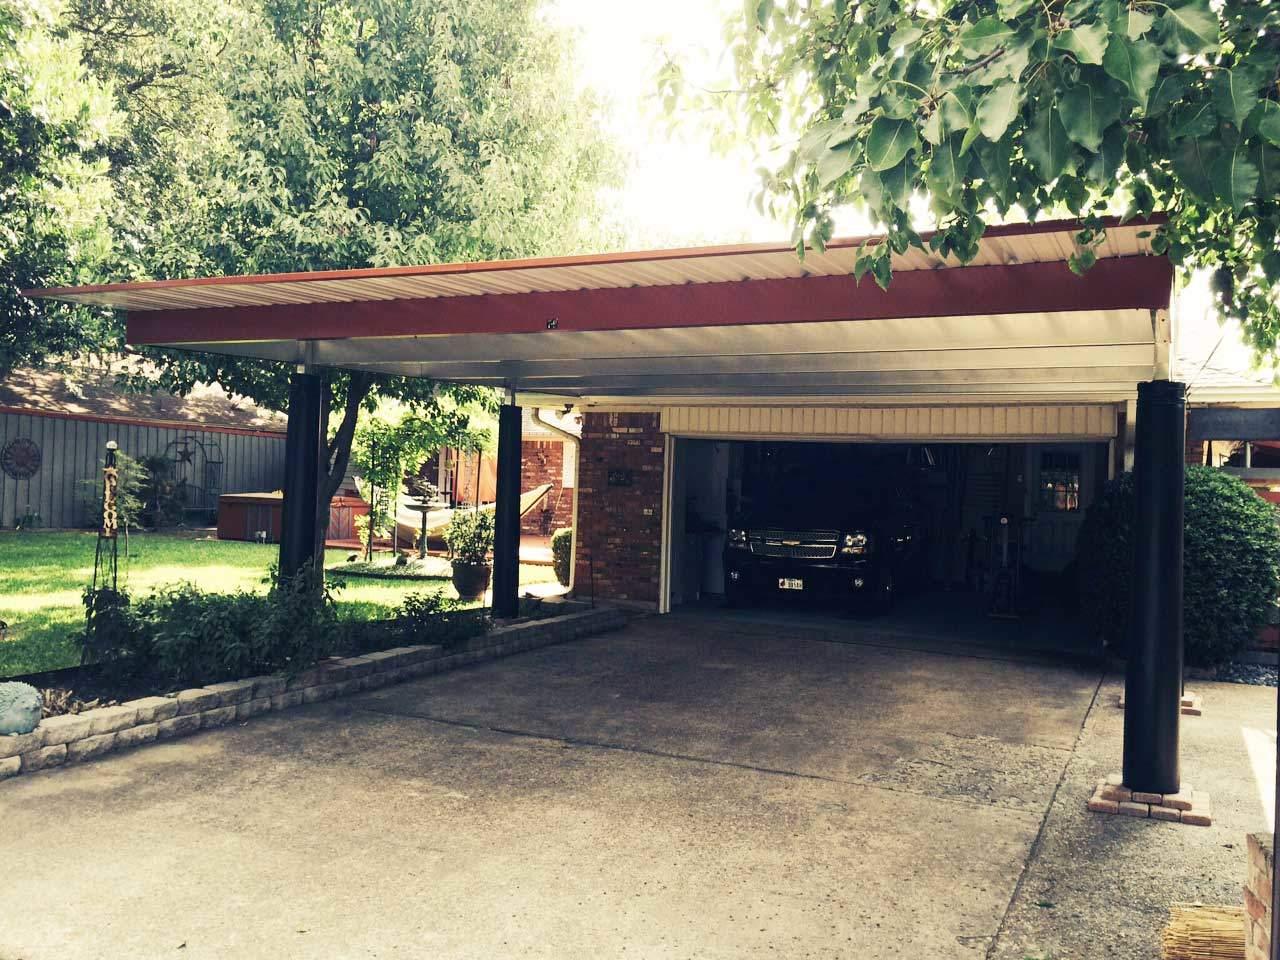 Terrassenüberdachung Plane Plane Carport Finest For Sale By Owner Airplane Hangar With Plane